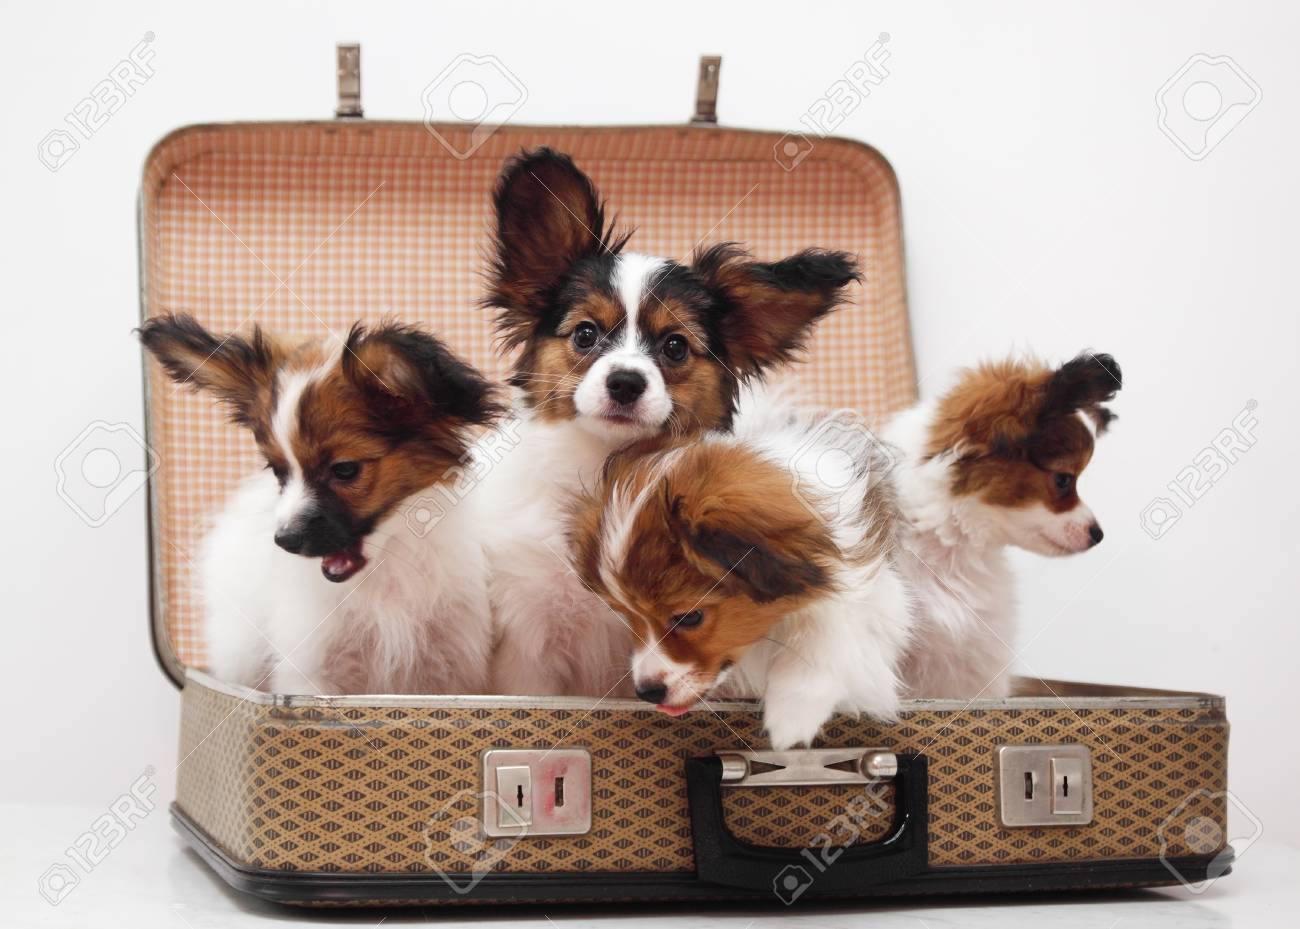 Four Papillon Puppies In The Suitcase Isolated On White Background